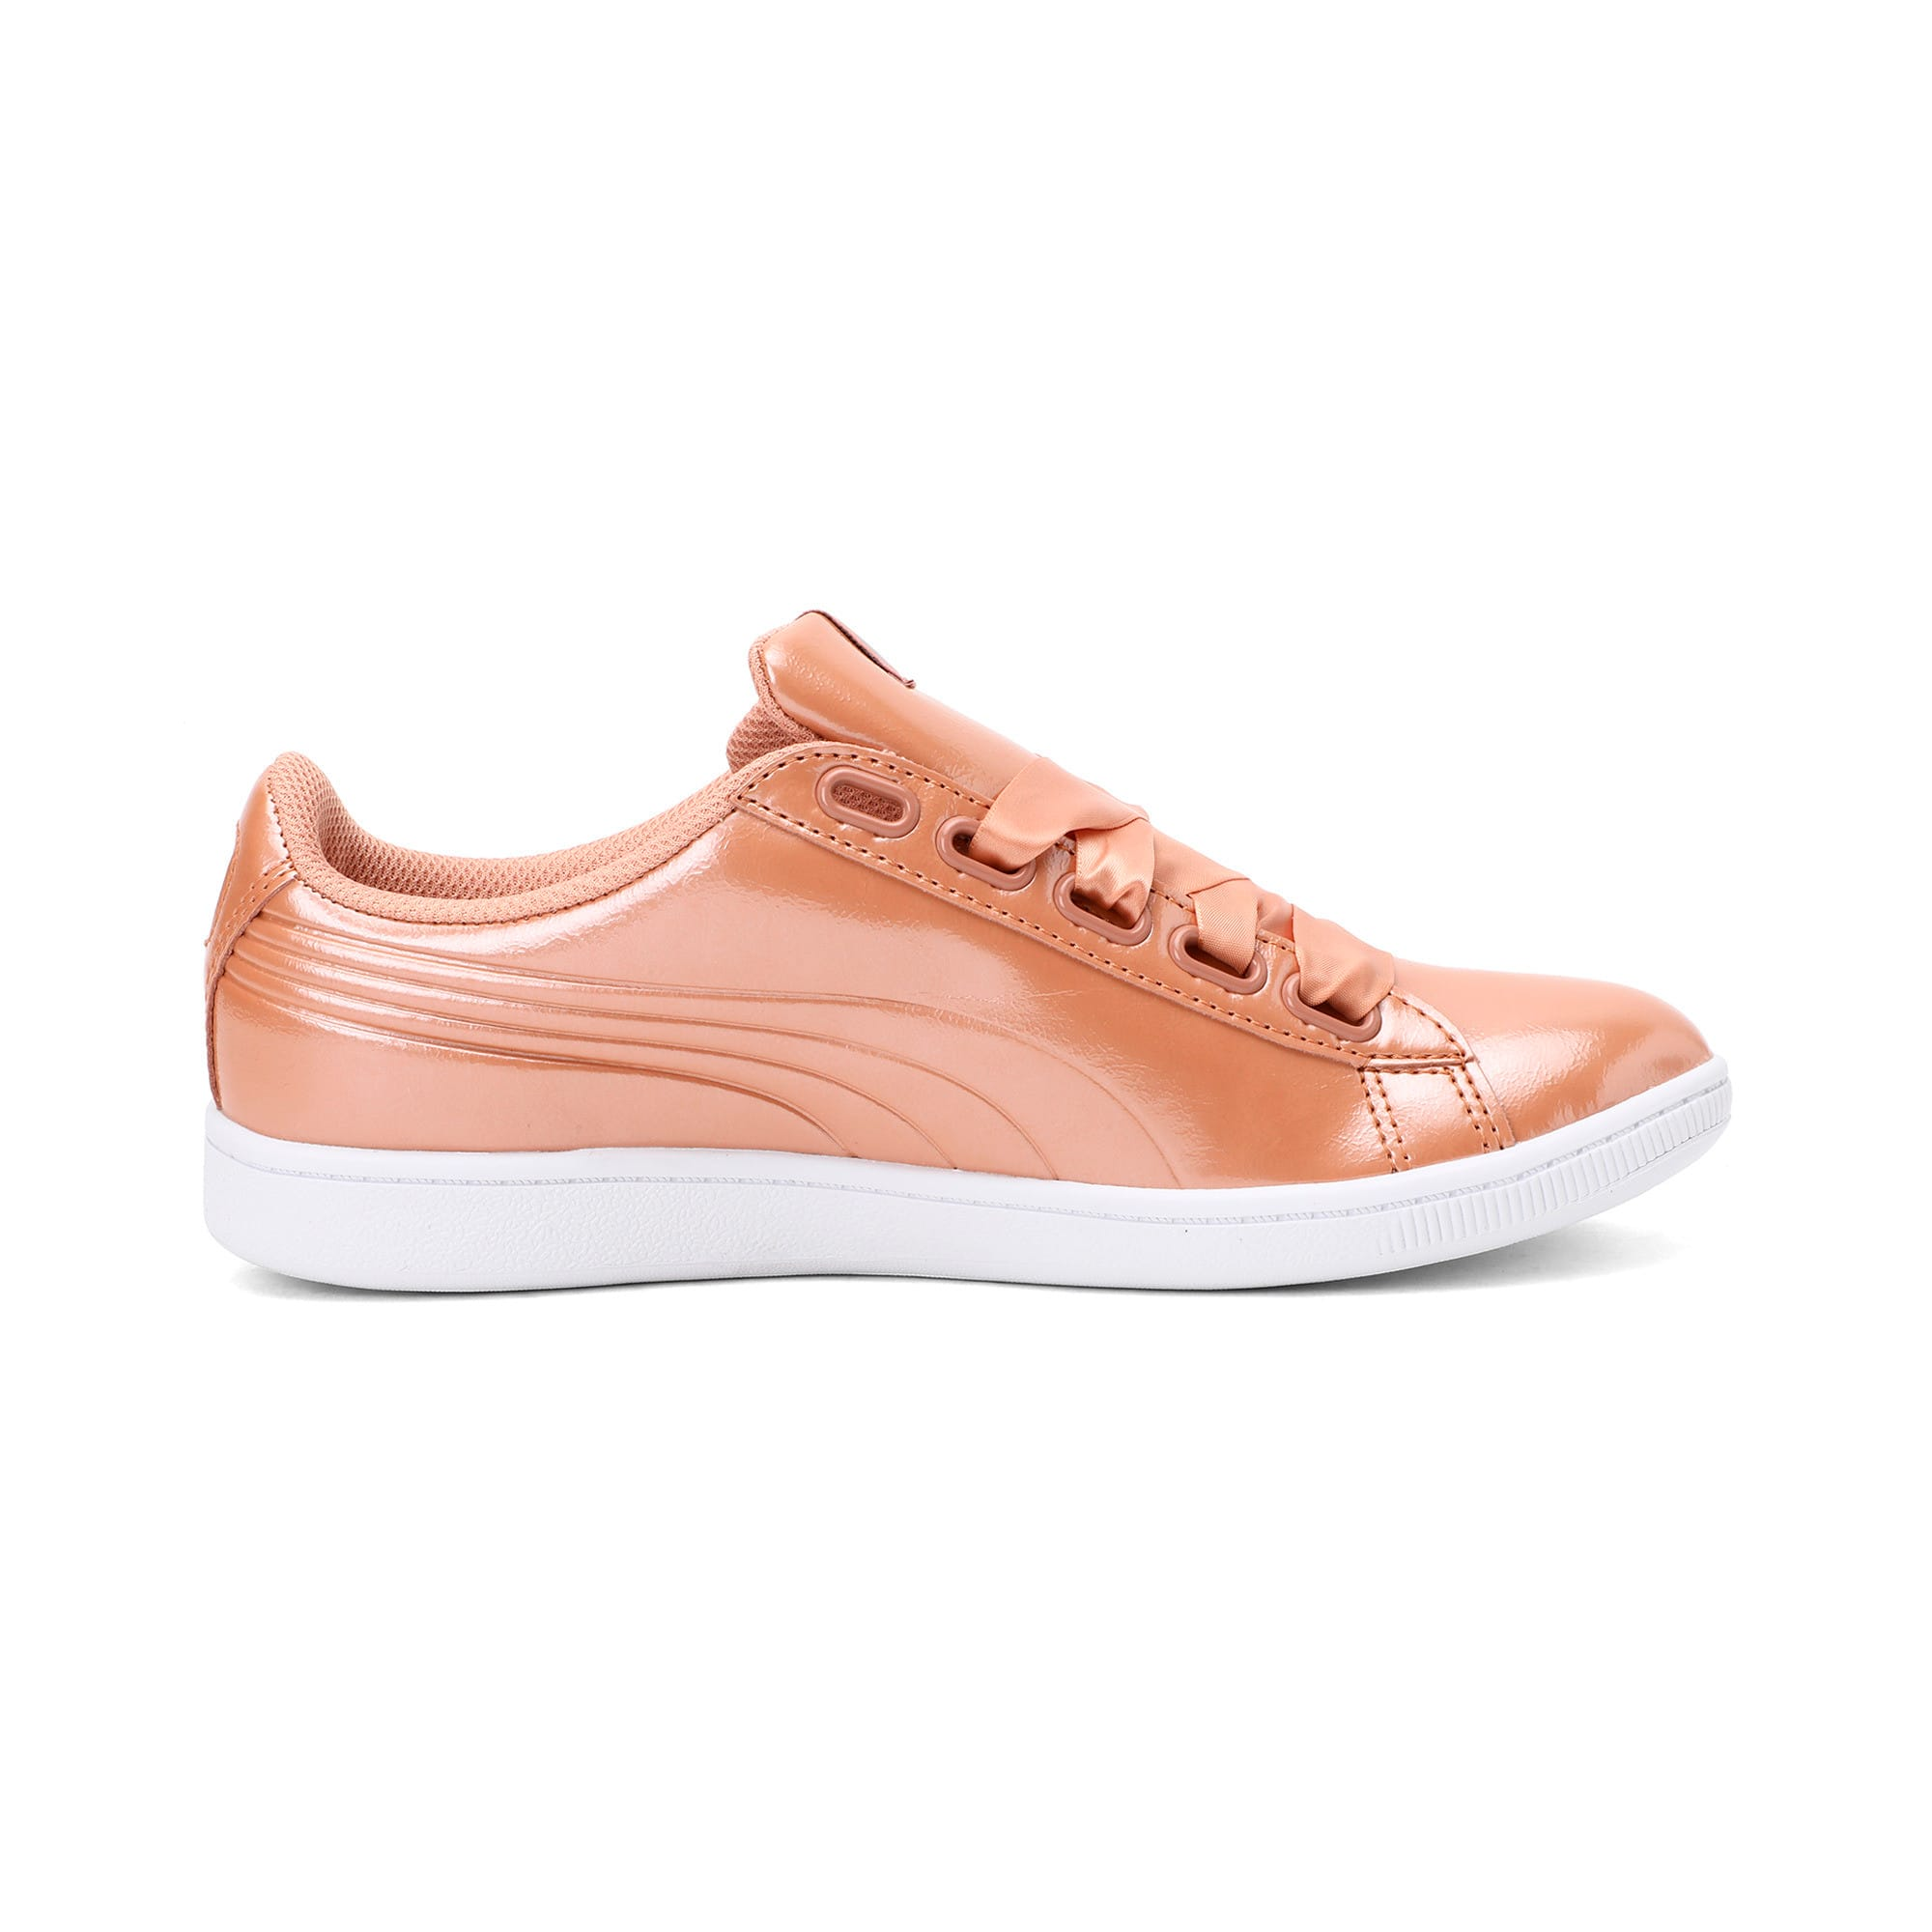 Thumbnail 5 of Vikky Ribbon Patent Women's Trainers, Dusty Coral-Dusty Coral, medium-IND